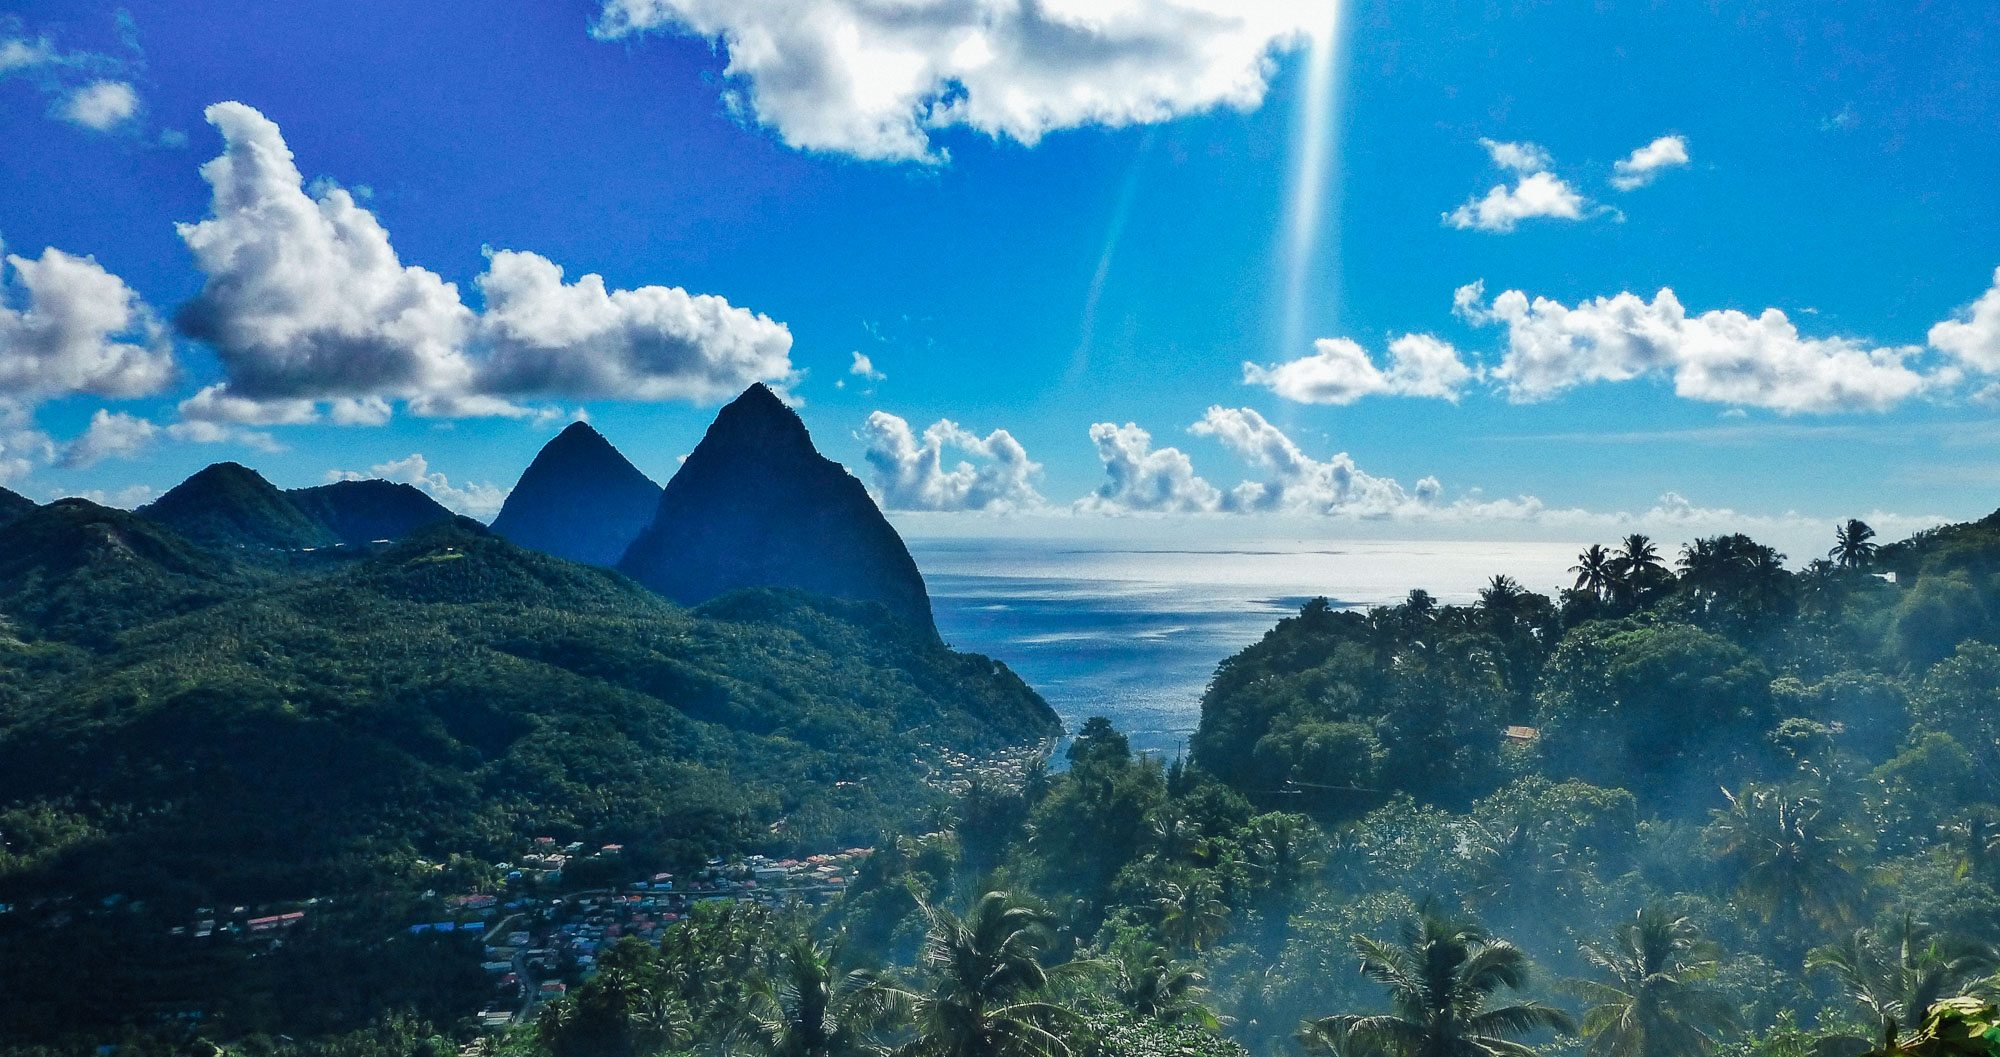 A view of the beach in St Lucia from the top of a hill